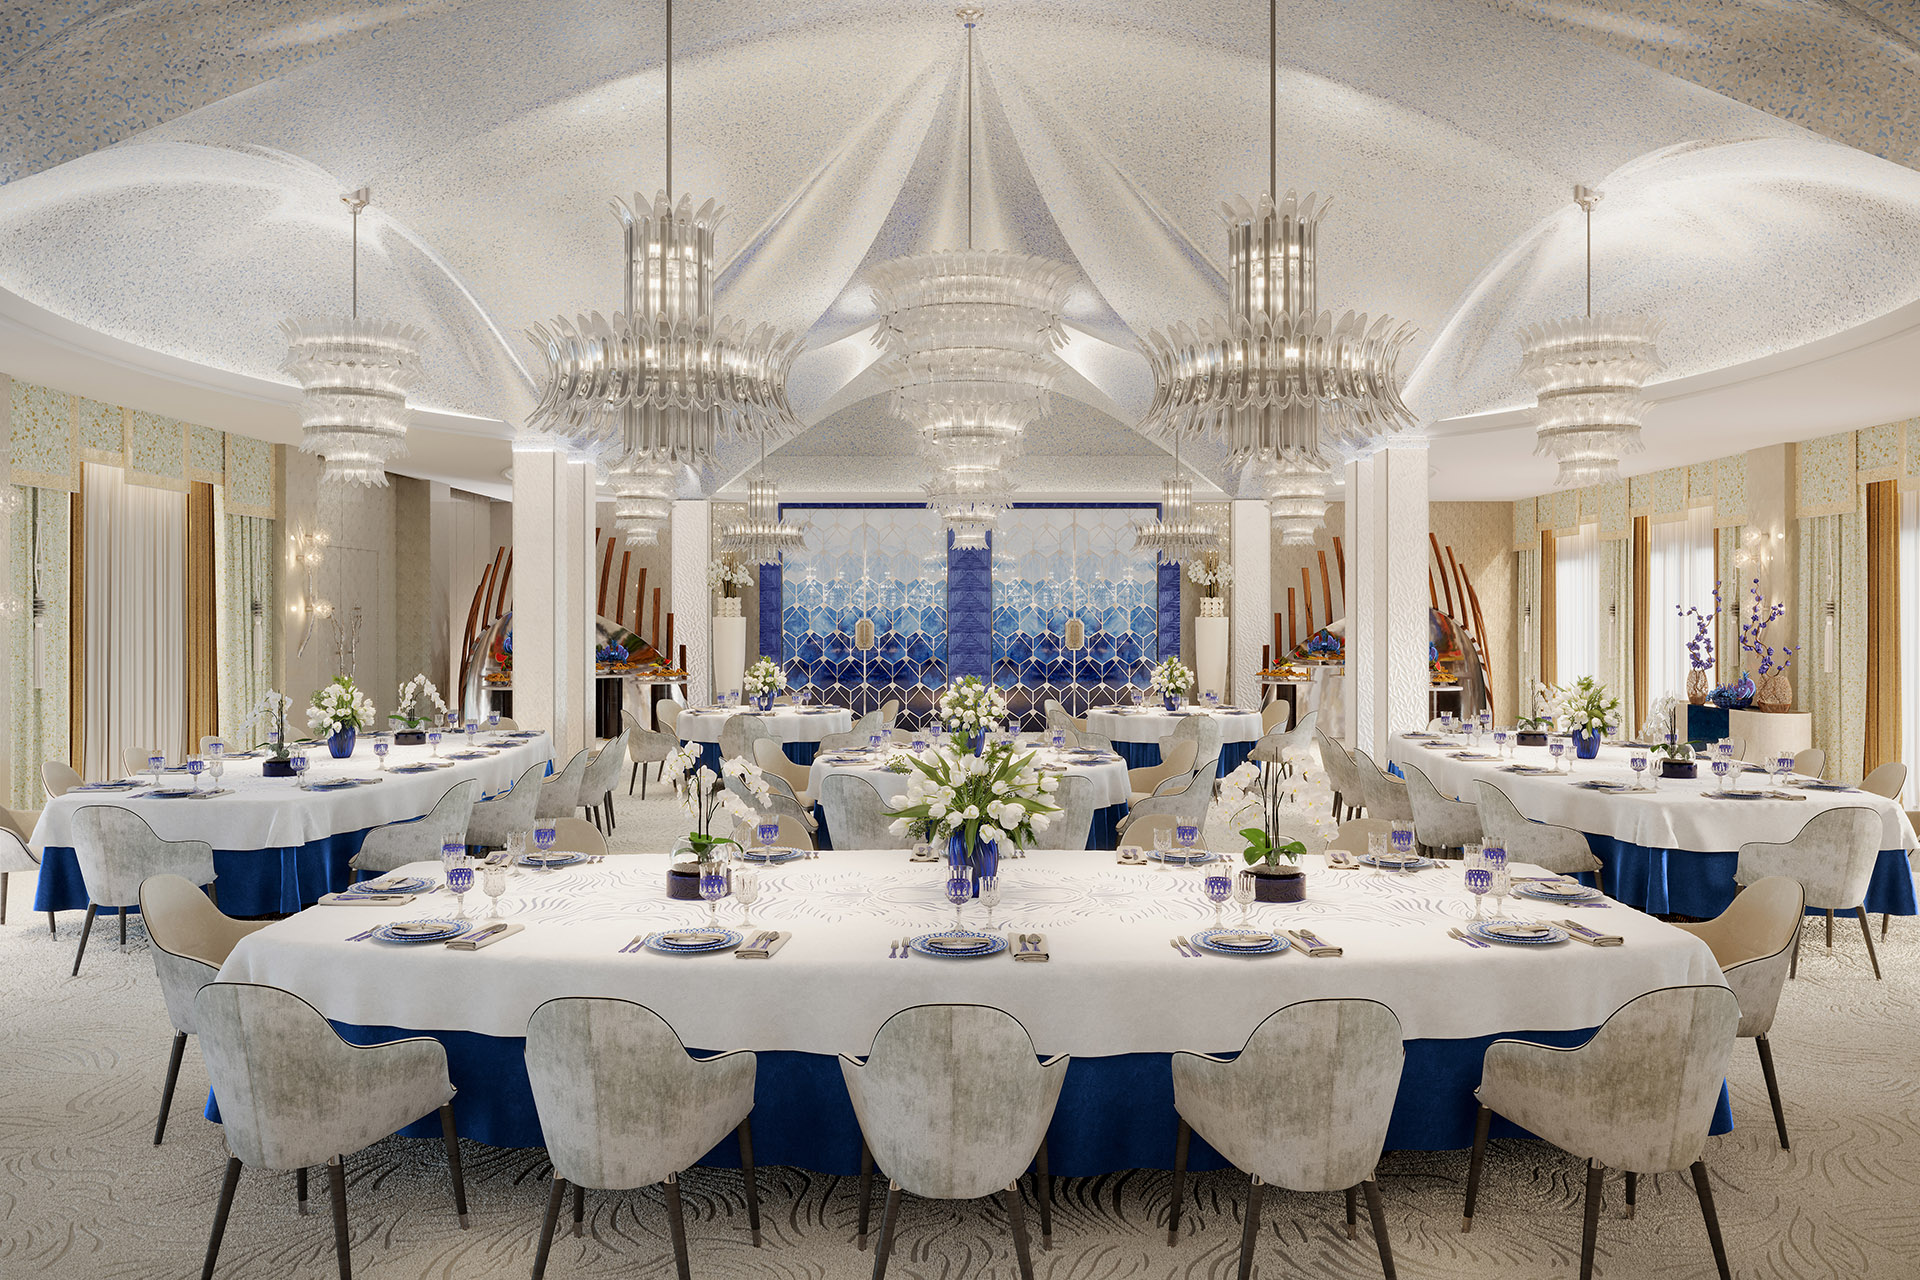 Grand dining room created by 3D graphic designers